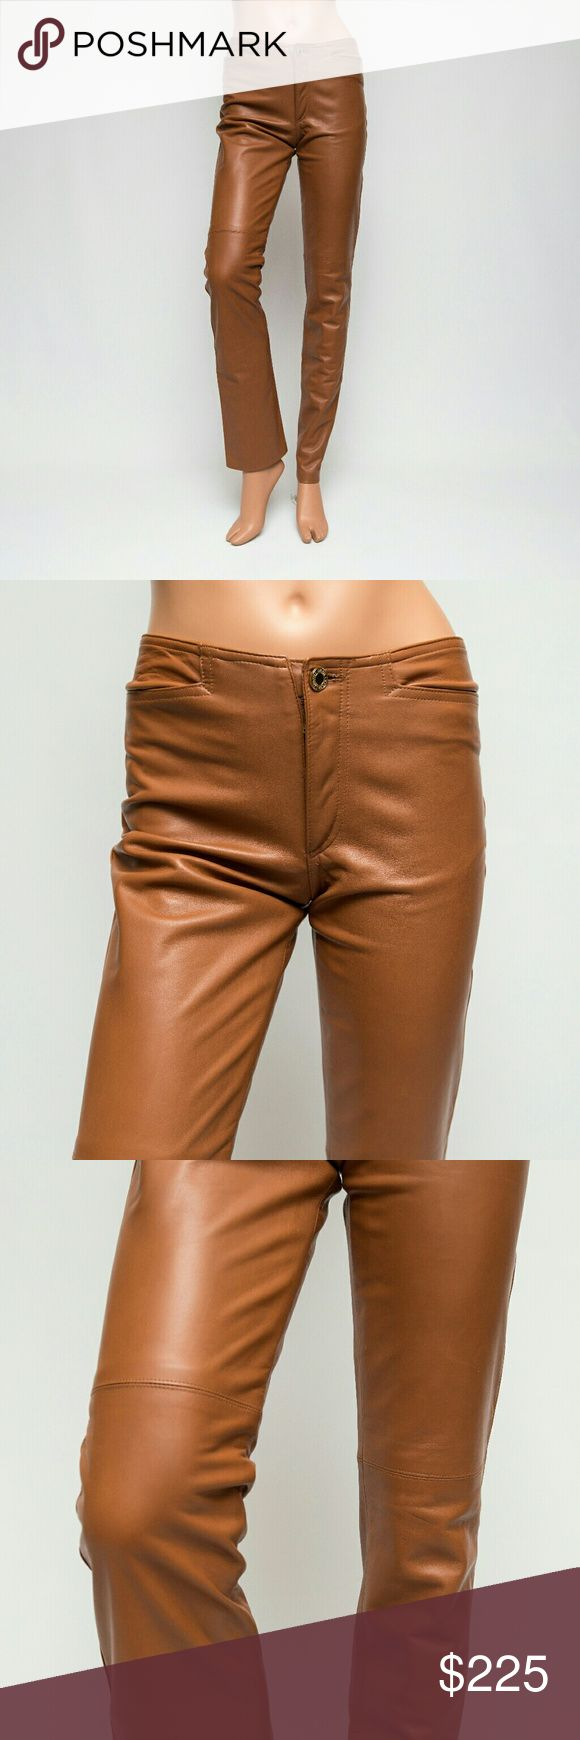 Ralph Lauren Black Label 2x33 Lamb Leather Pants I have for sale a gorgeous pair of chestnut brown lamb leather pants by Ralph Lauren, from the Black Label Collection. They are a size 2. It's advisable, in my opinion, to size up when you buy leather pants since leather doesn't have as much stretch as denim. They look quite fabulous, are completely lined, and have a few faint scratches here and there and a very faint and small spot on one of the legs at the bottom. I had to hunt to find these…